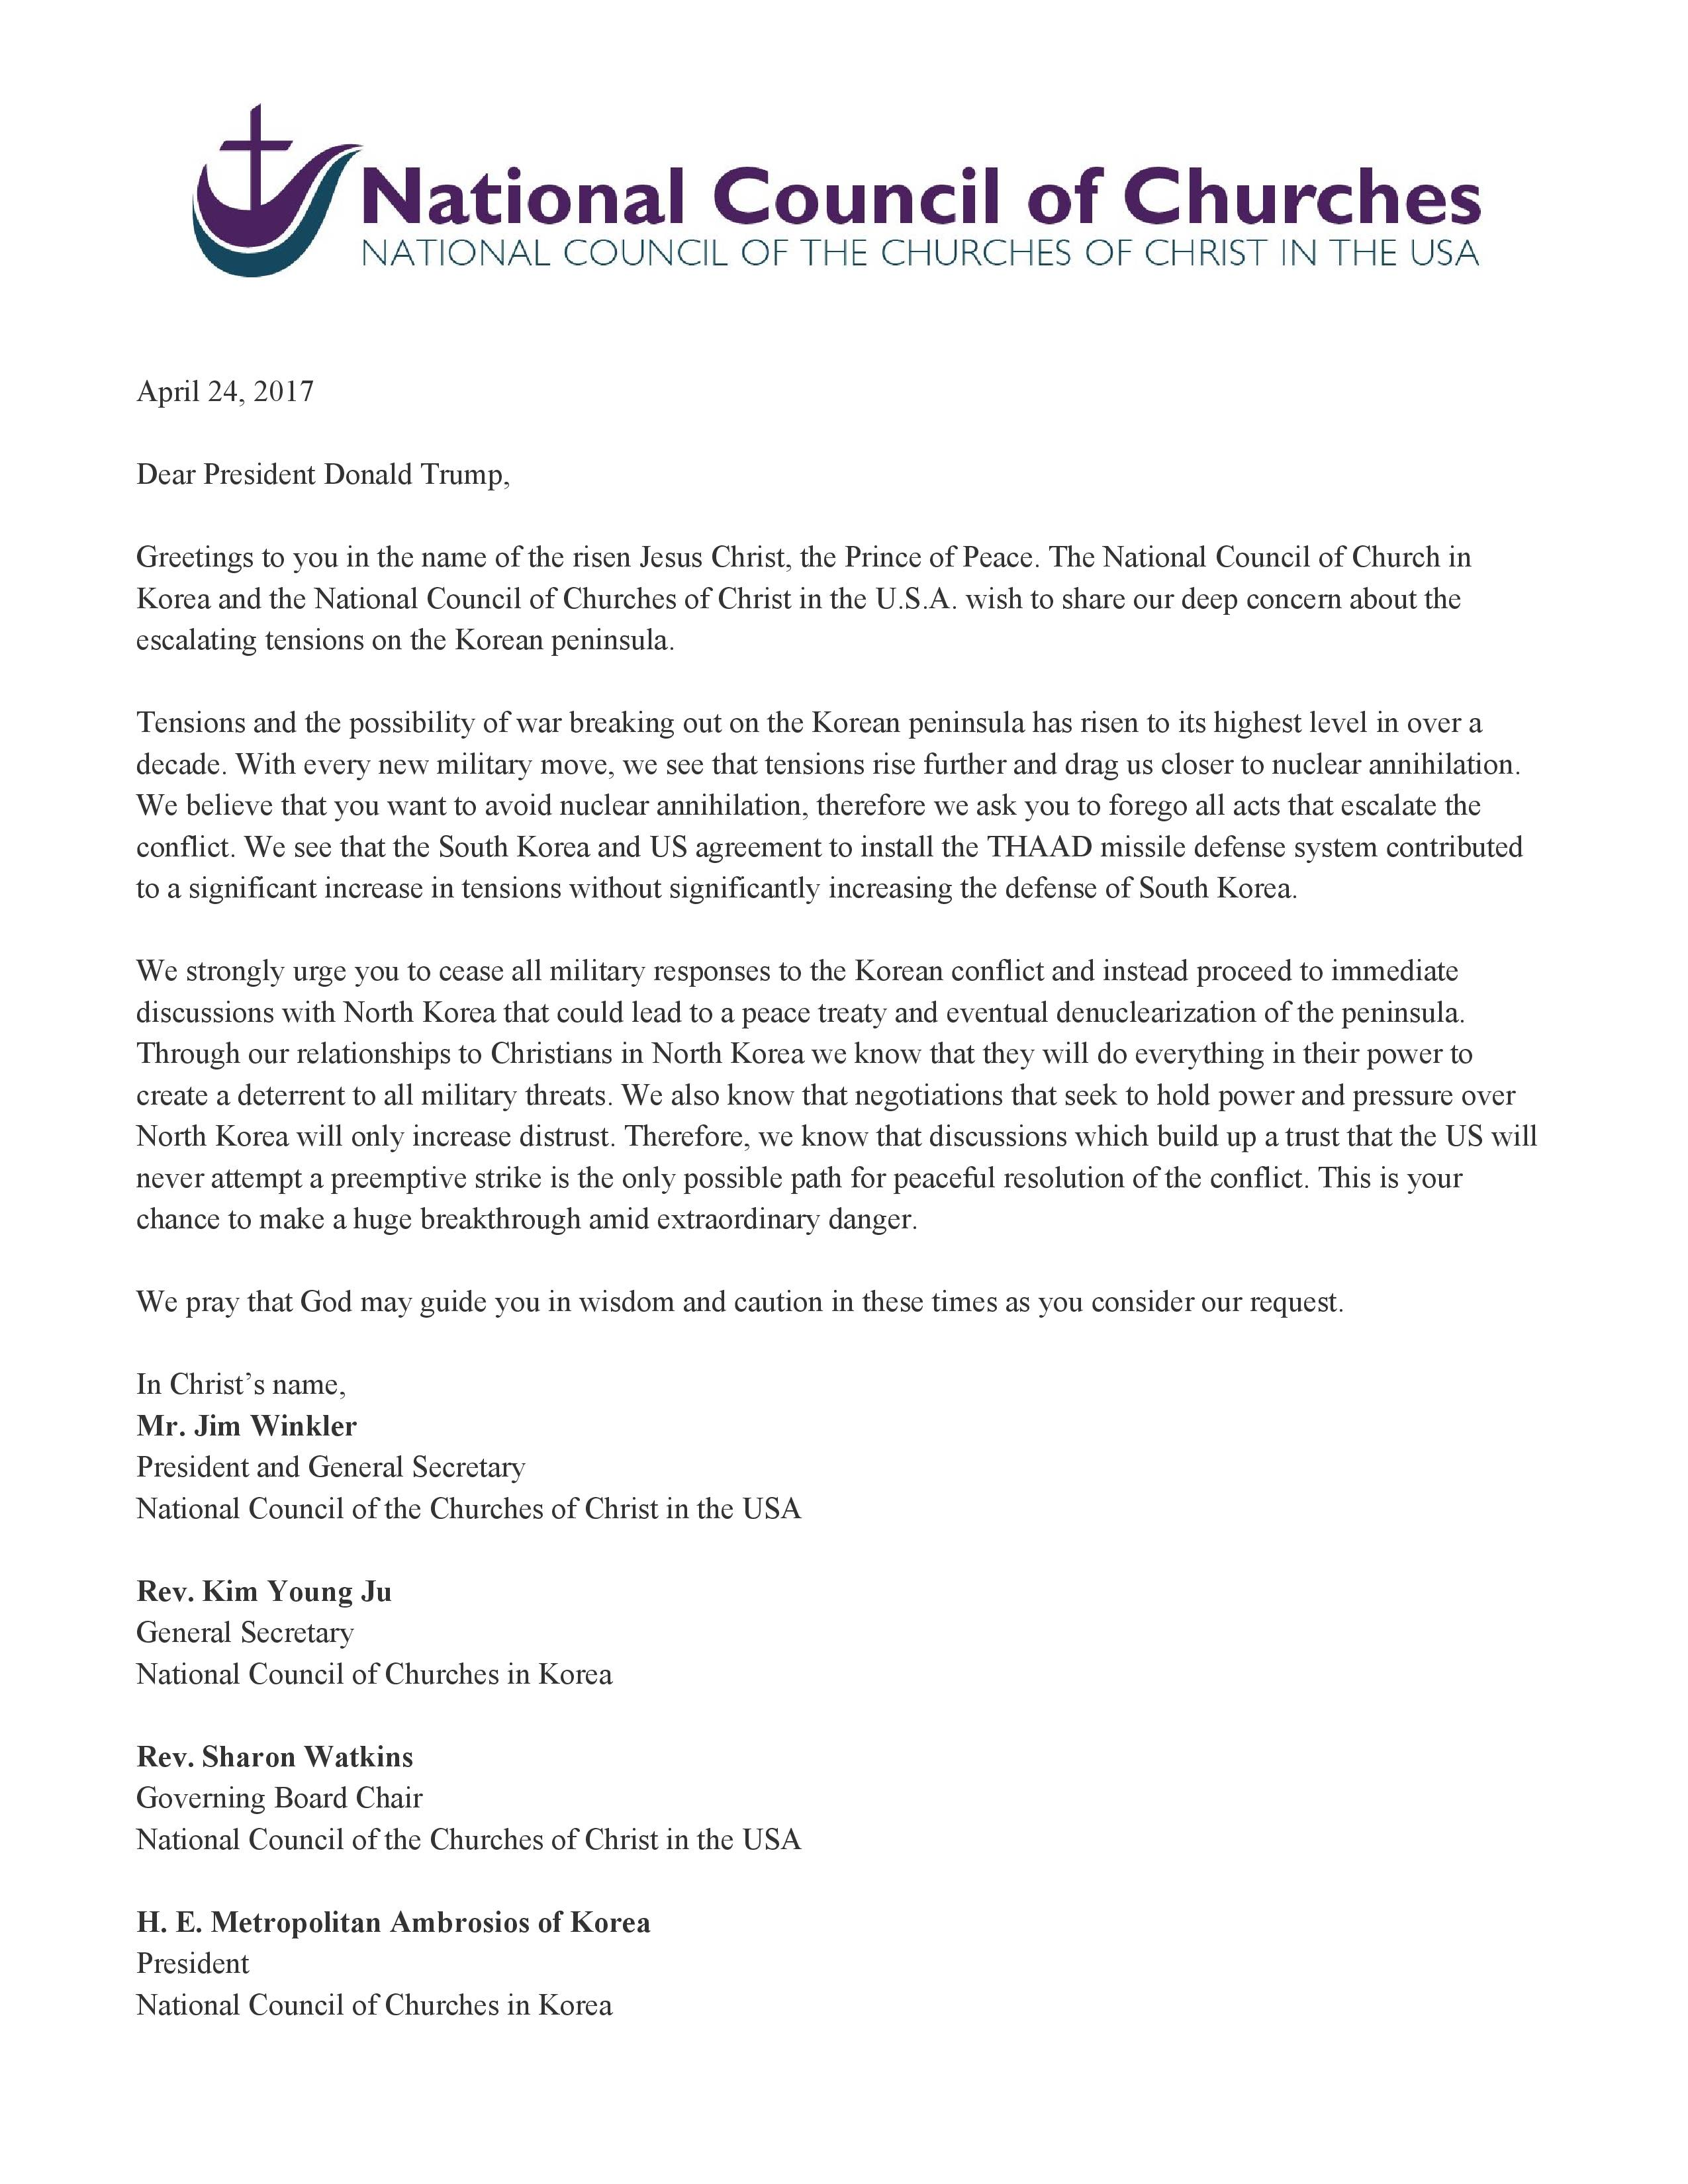 ncccusa letter to president trump for peace in korea